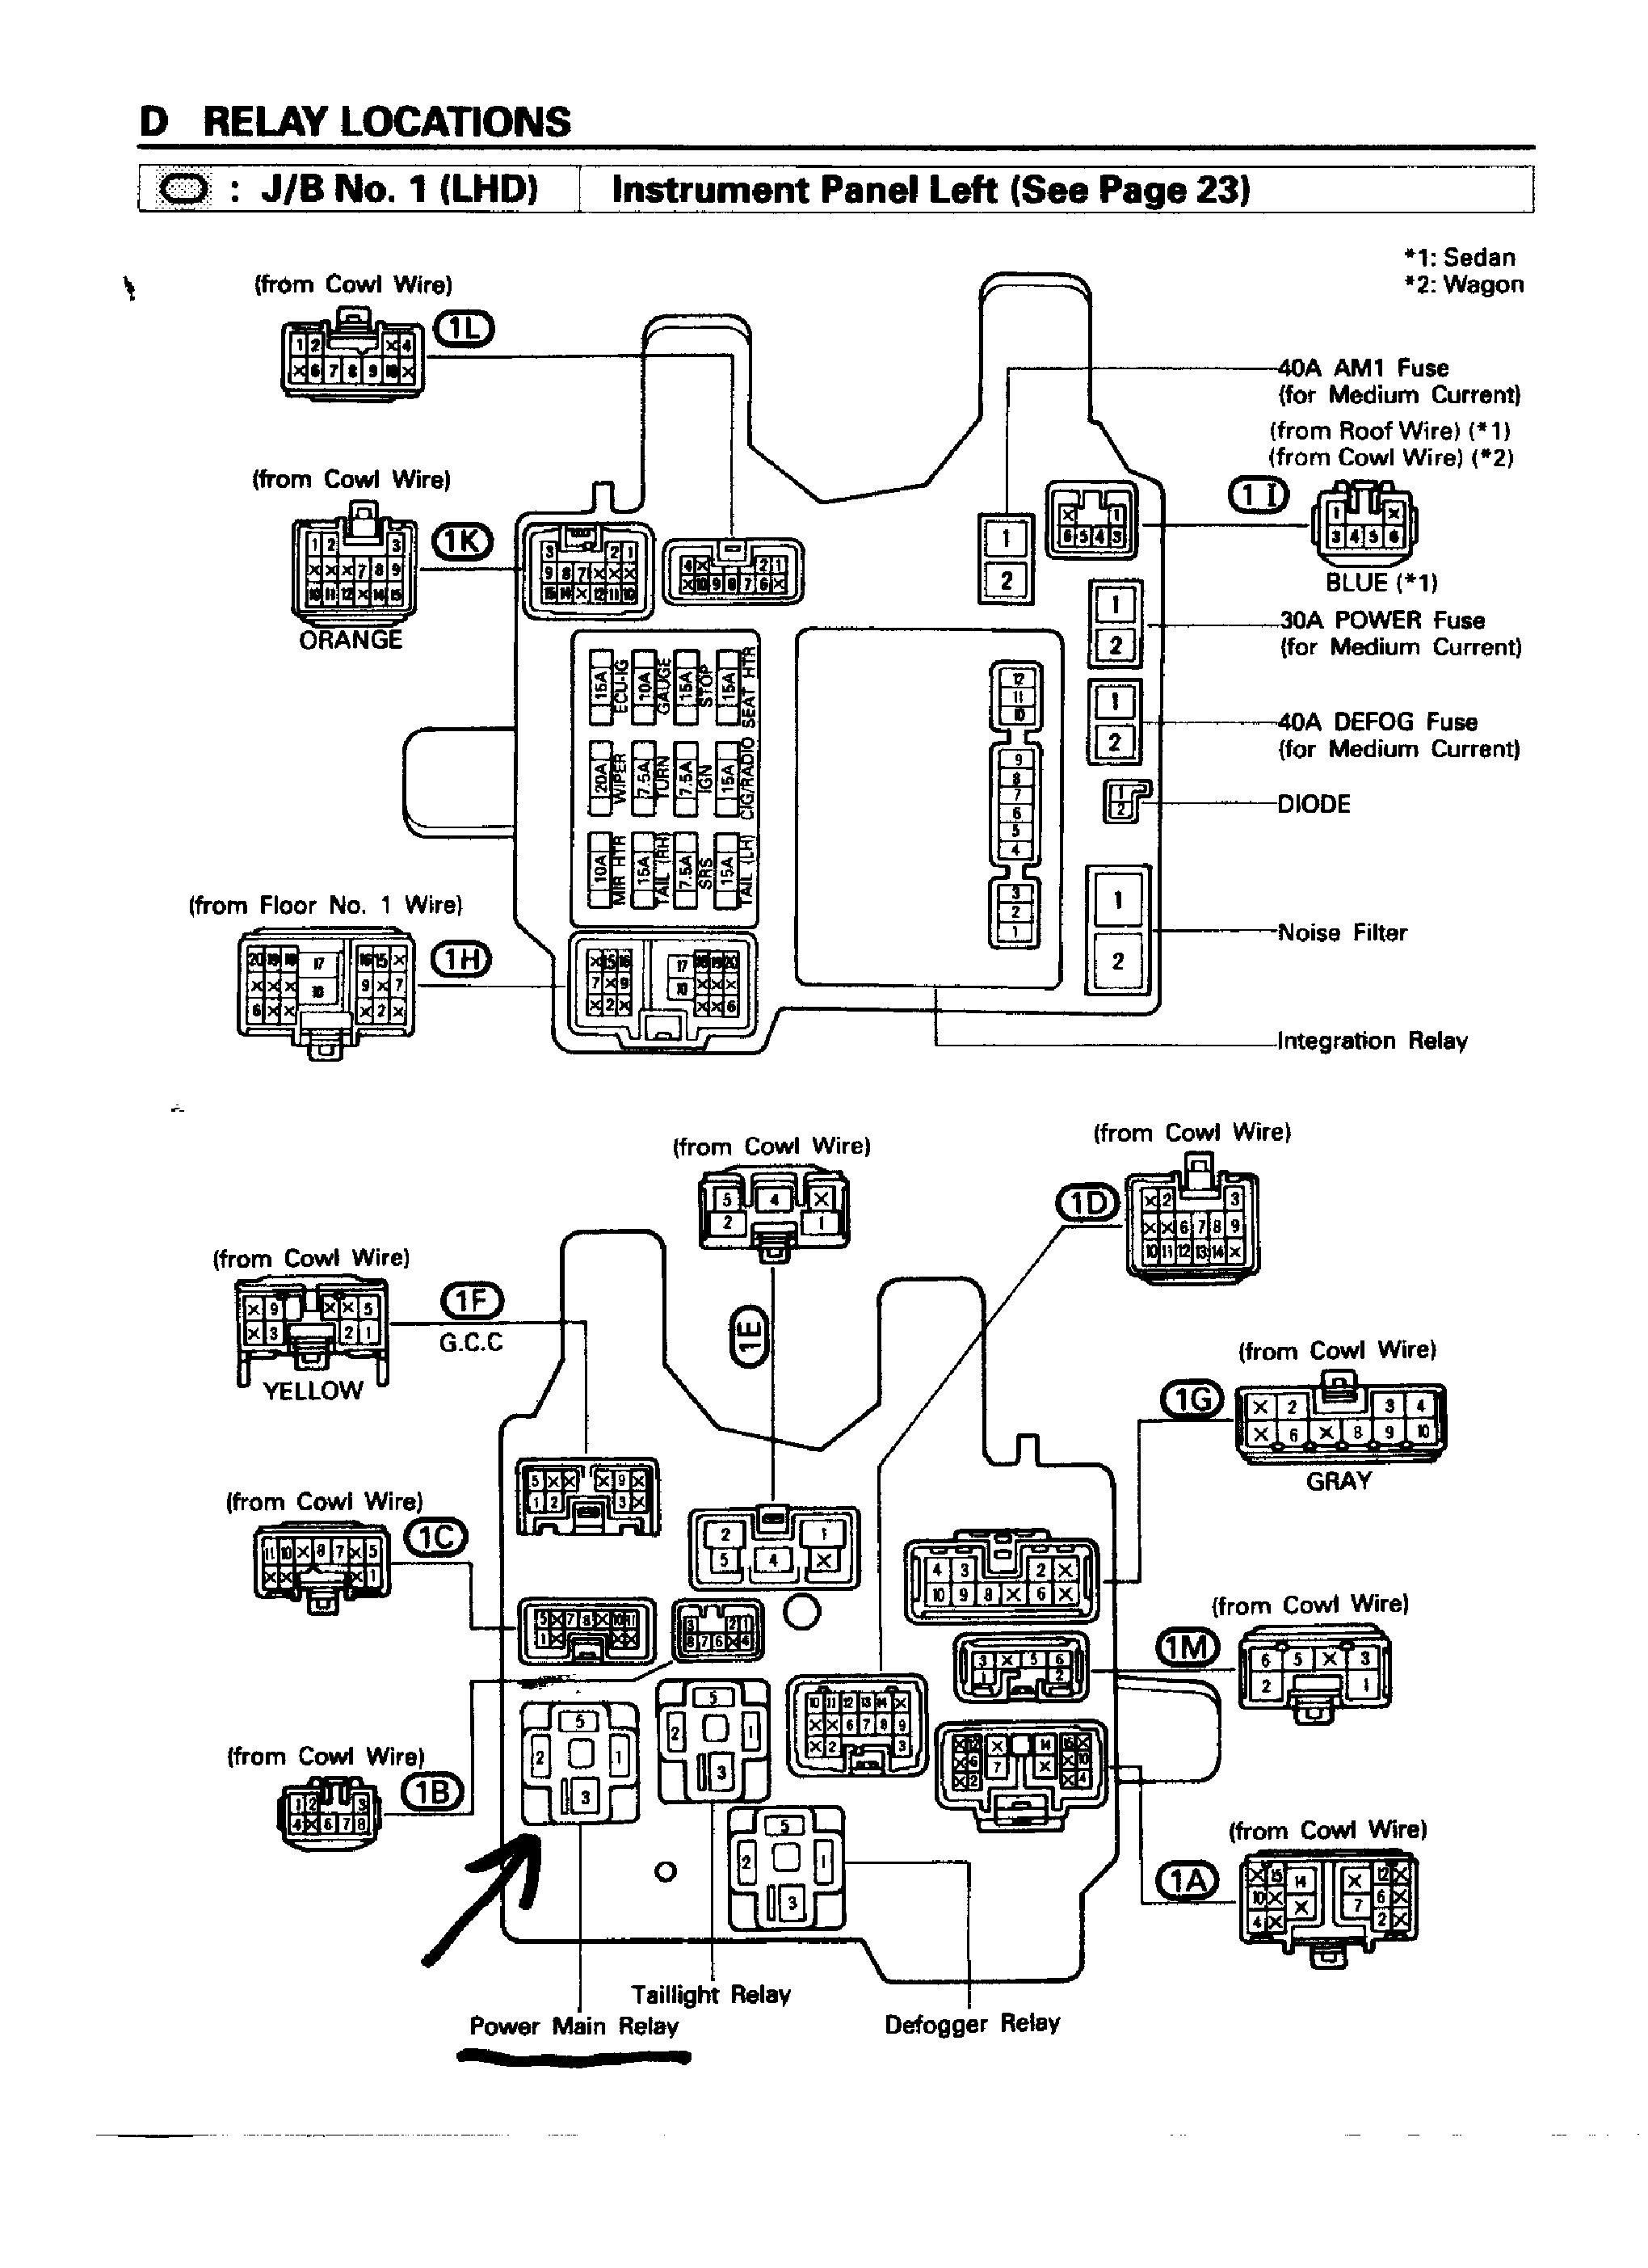 Toyota Camry 2007 Engine Diagram Stunning 1995 toyota Camry Wiring Diagram Everything You Of Toyota Camry 2007 Engine Diagram